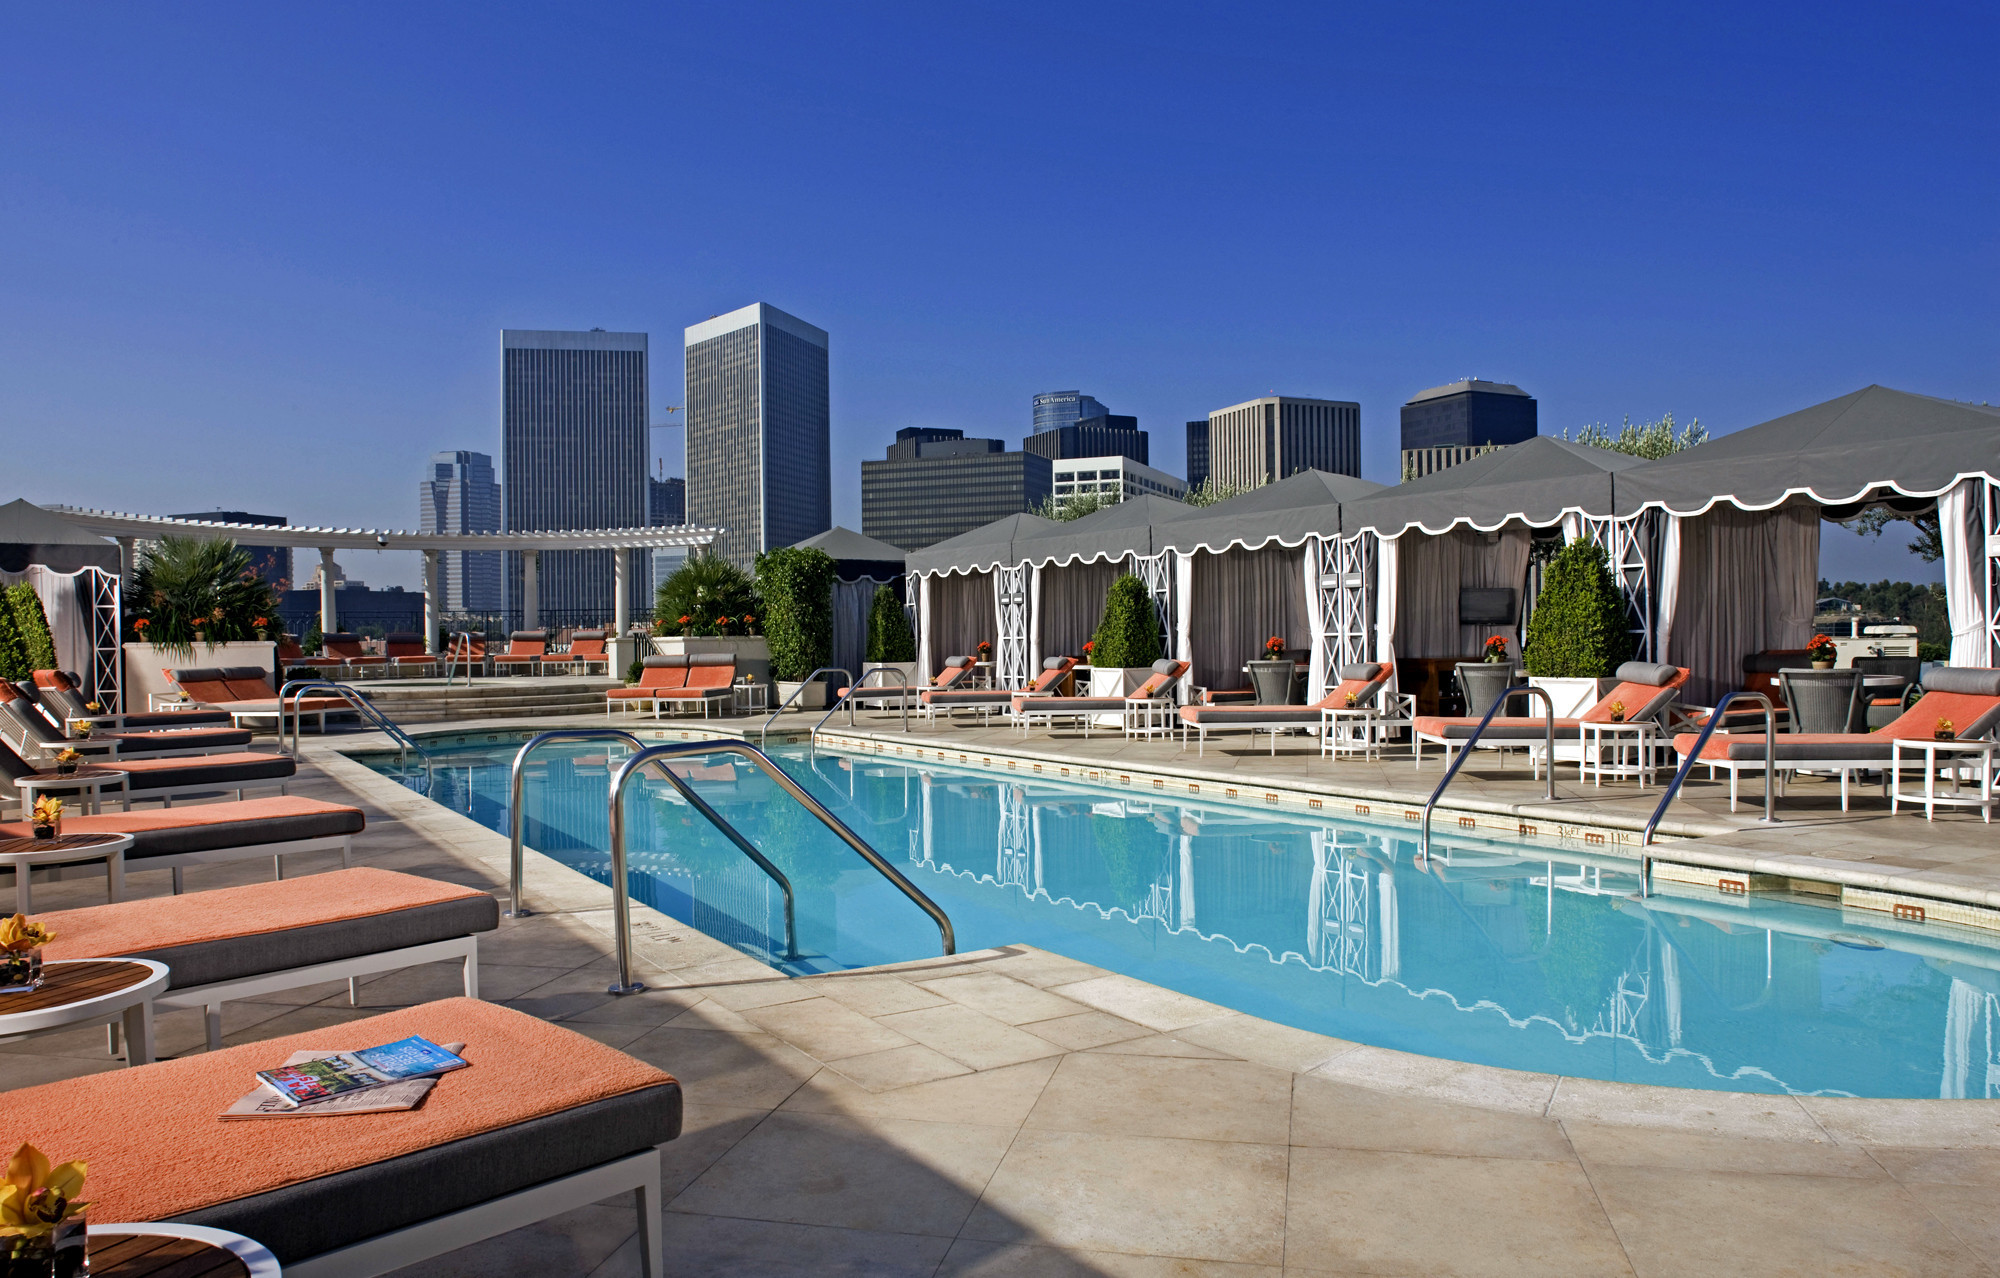 16 Hotels In California 5 In Las Vegas Earn 2016 Five